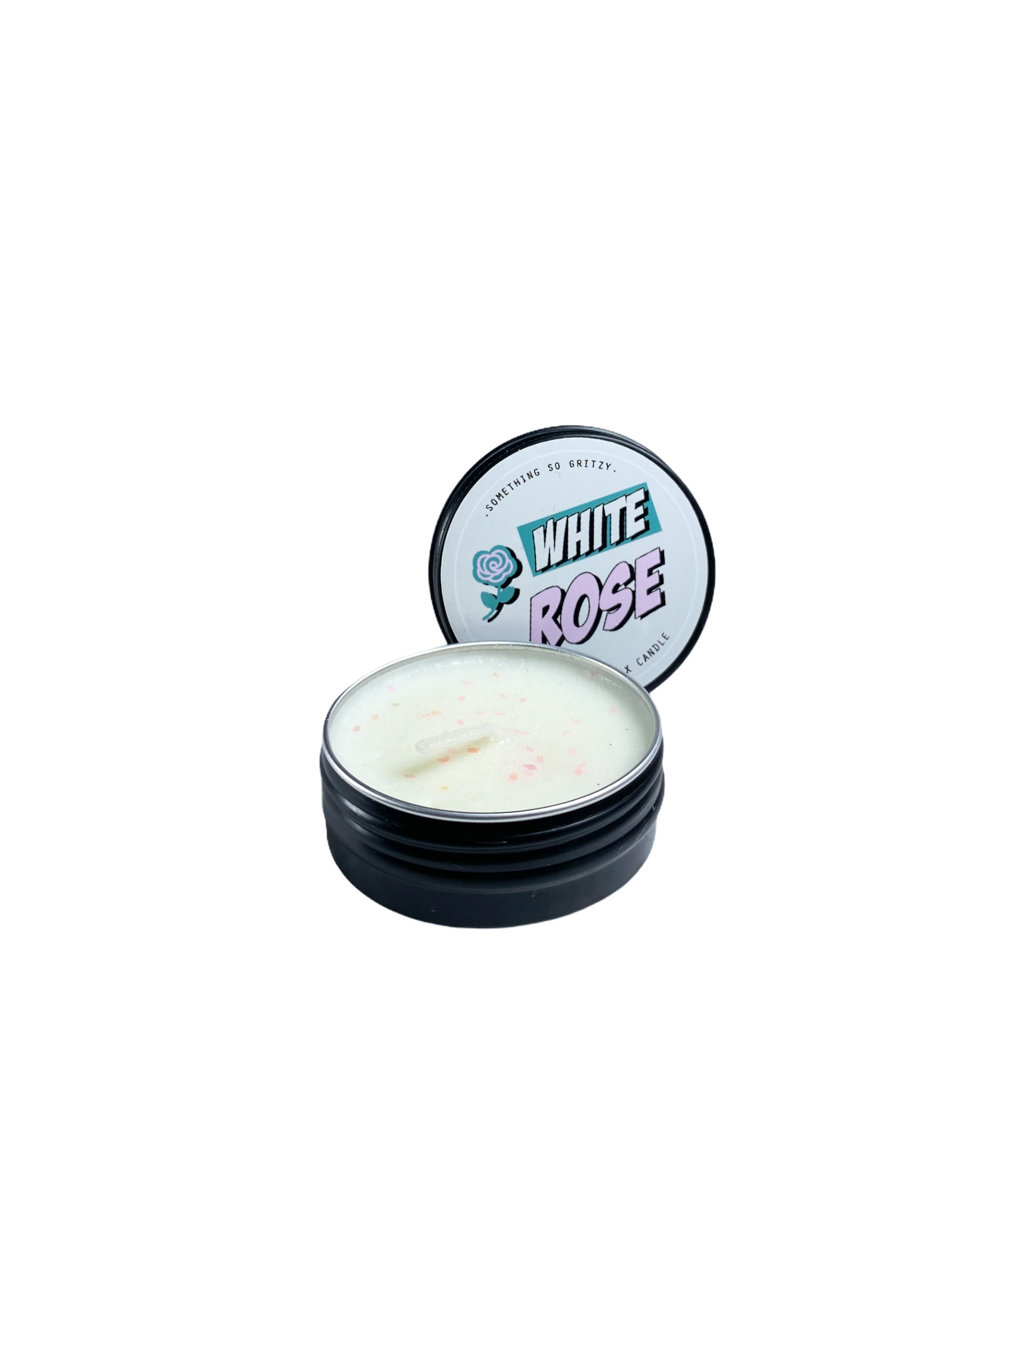 White Rose Soy Wax Candle